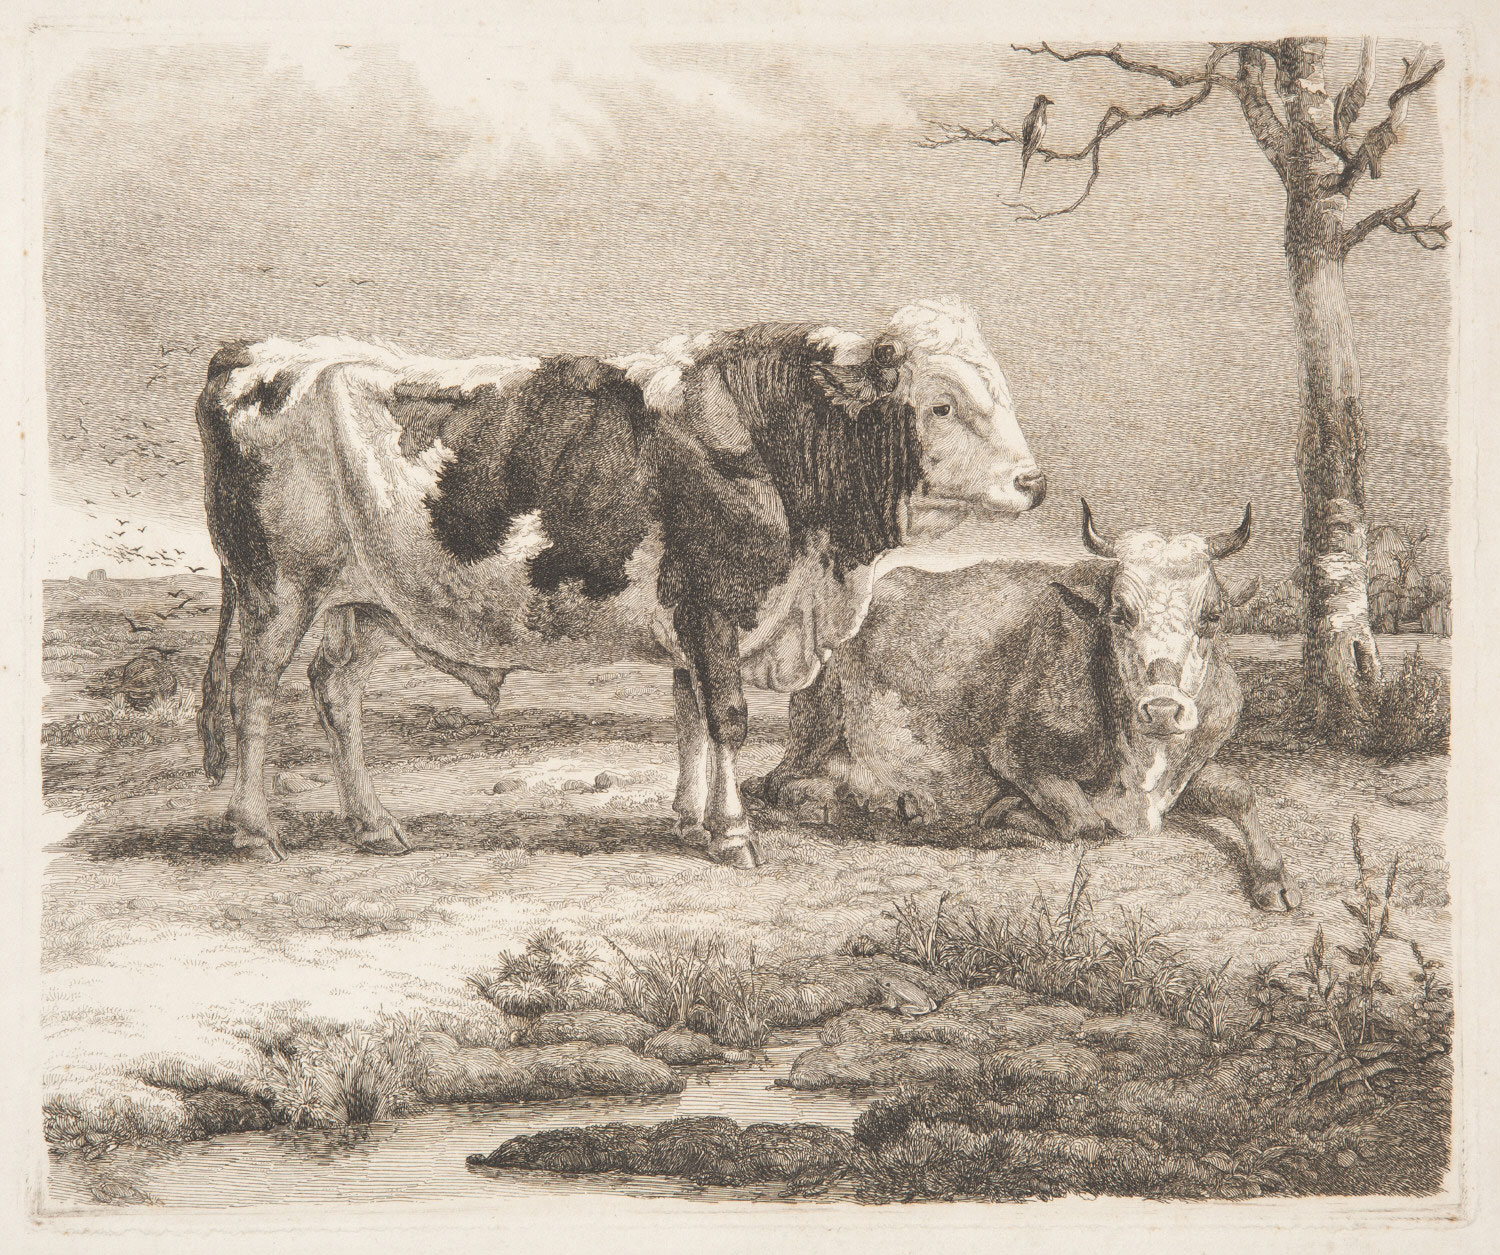 Two Cows, One Lying Down, in a Landscape